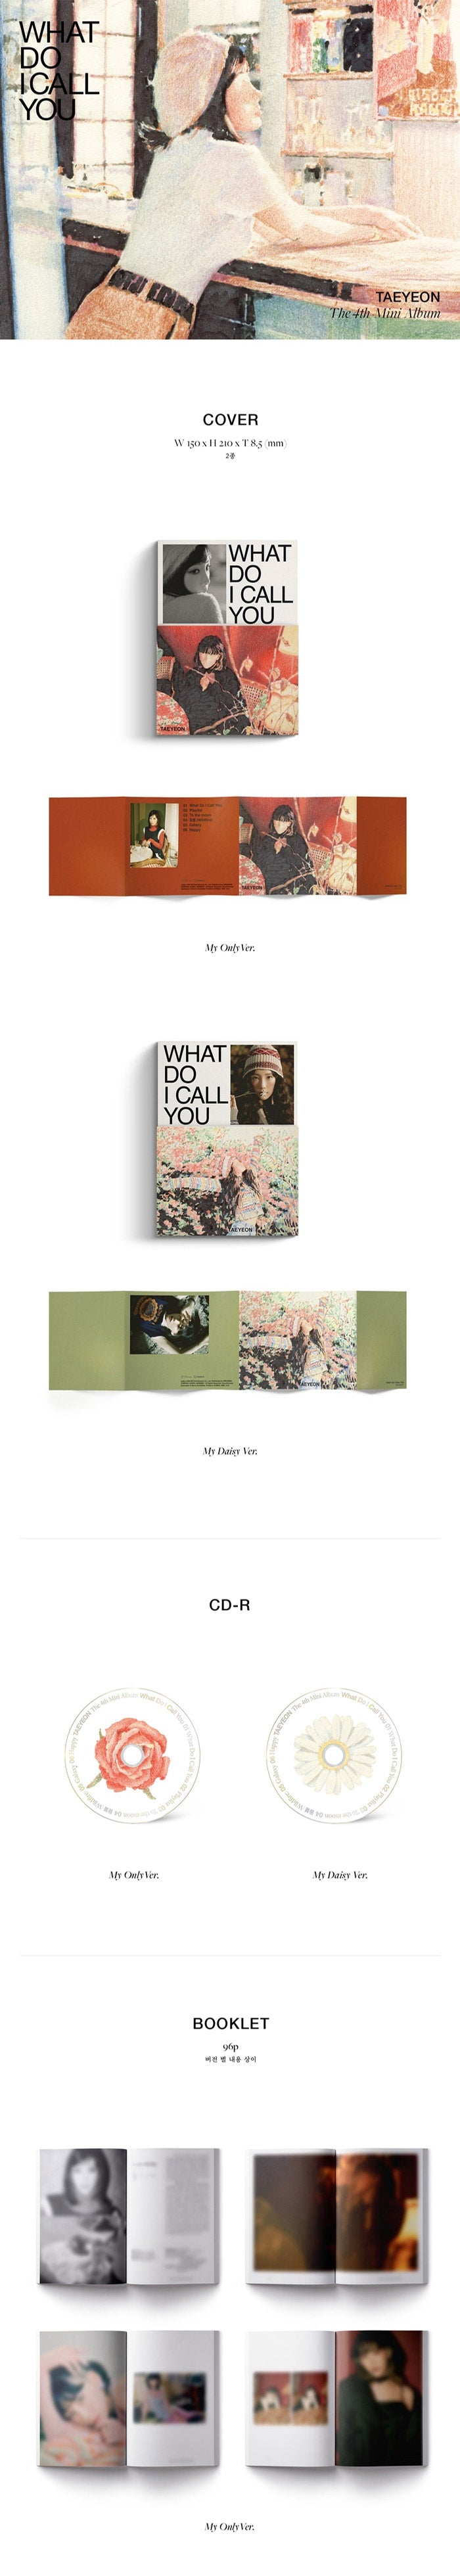 TAEYEON 4th album WHAT DO I CALL YOU Version A My Only - Version B My Daisy